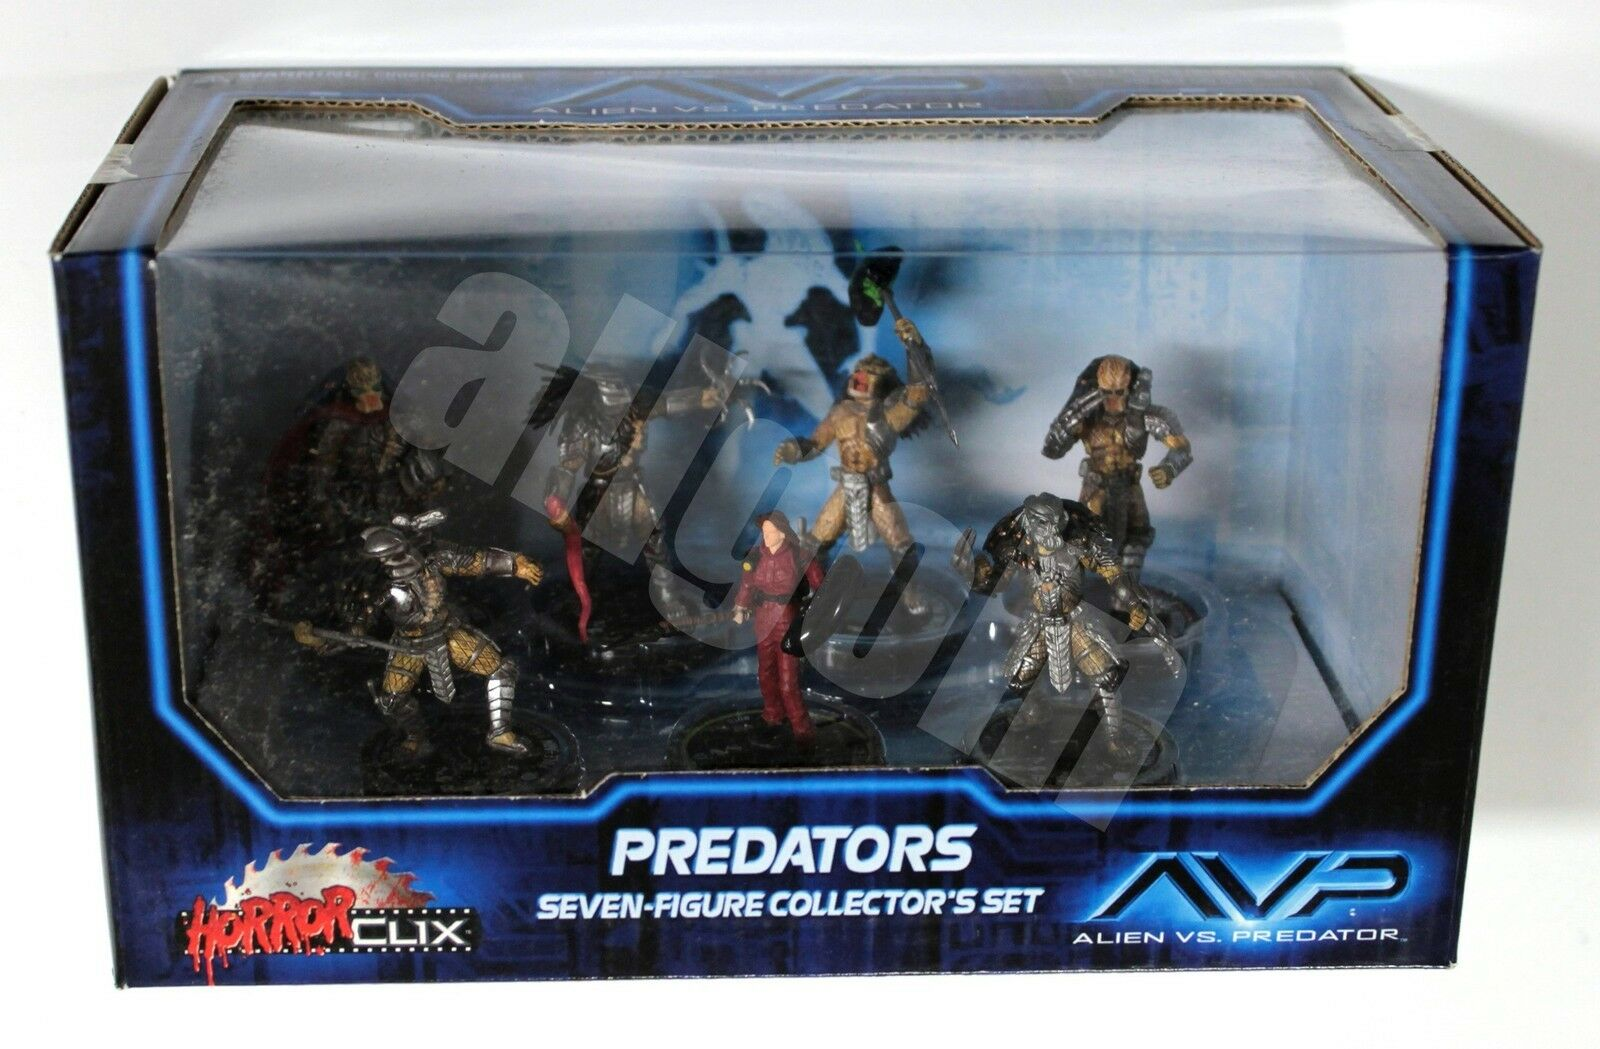 HeroClix HorrorClix ProtATORS COLLECTOR'S SET AVP ALIEN VS ProtATOR Wizkids Wizkids Wizkids NEW ffe0a0